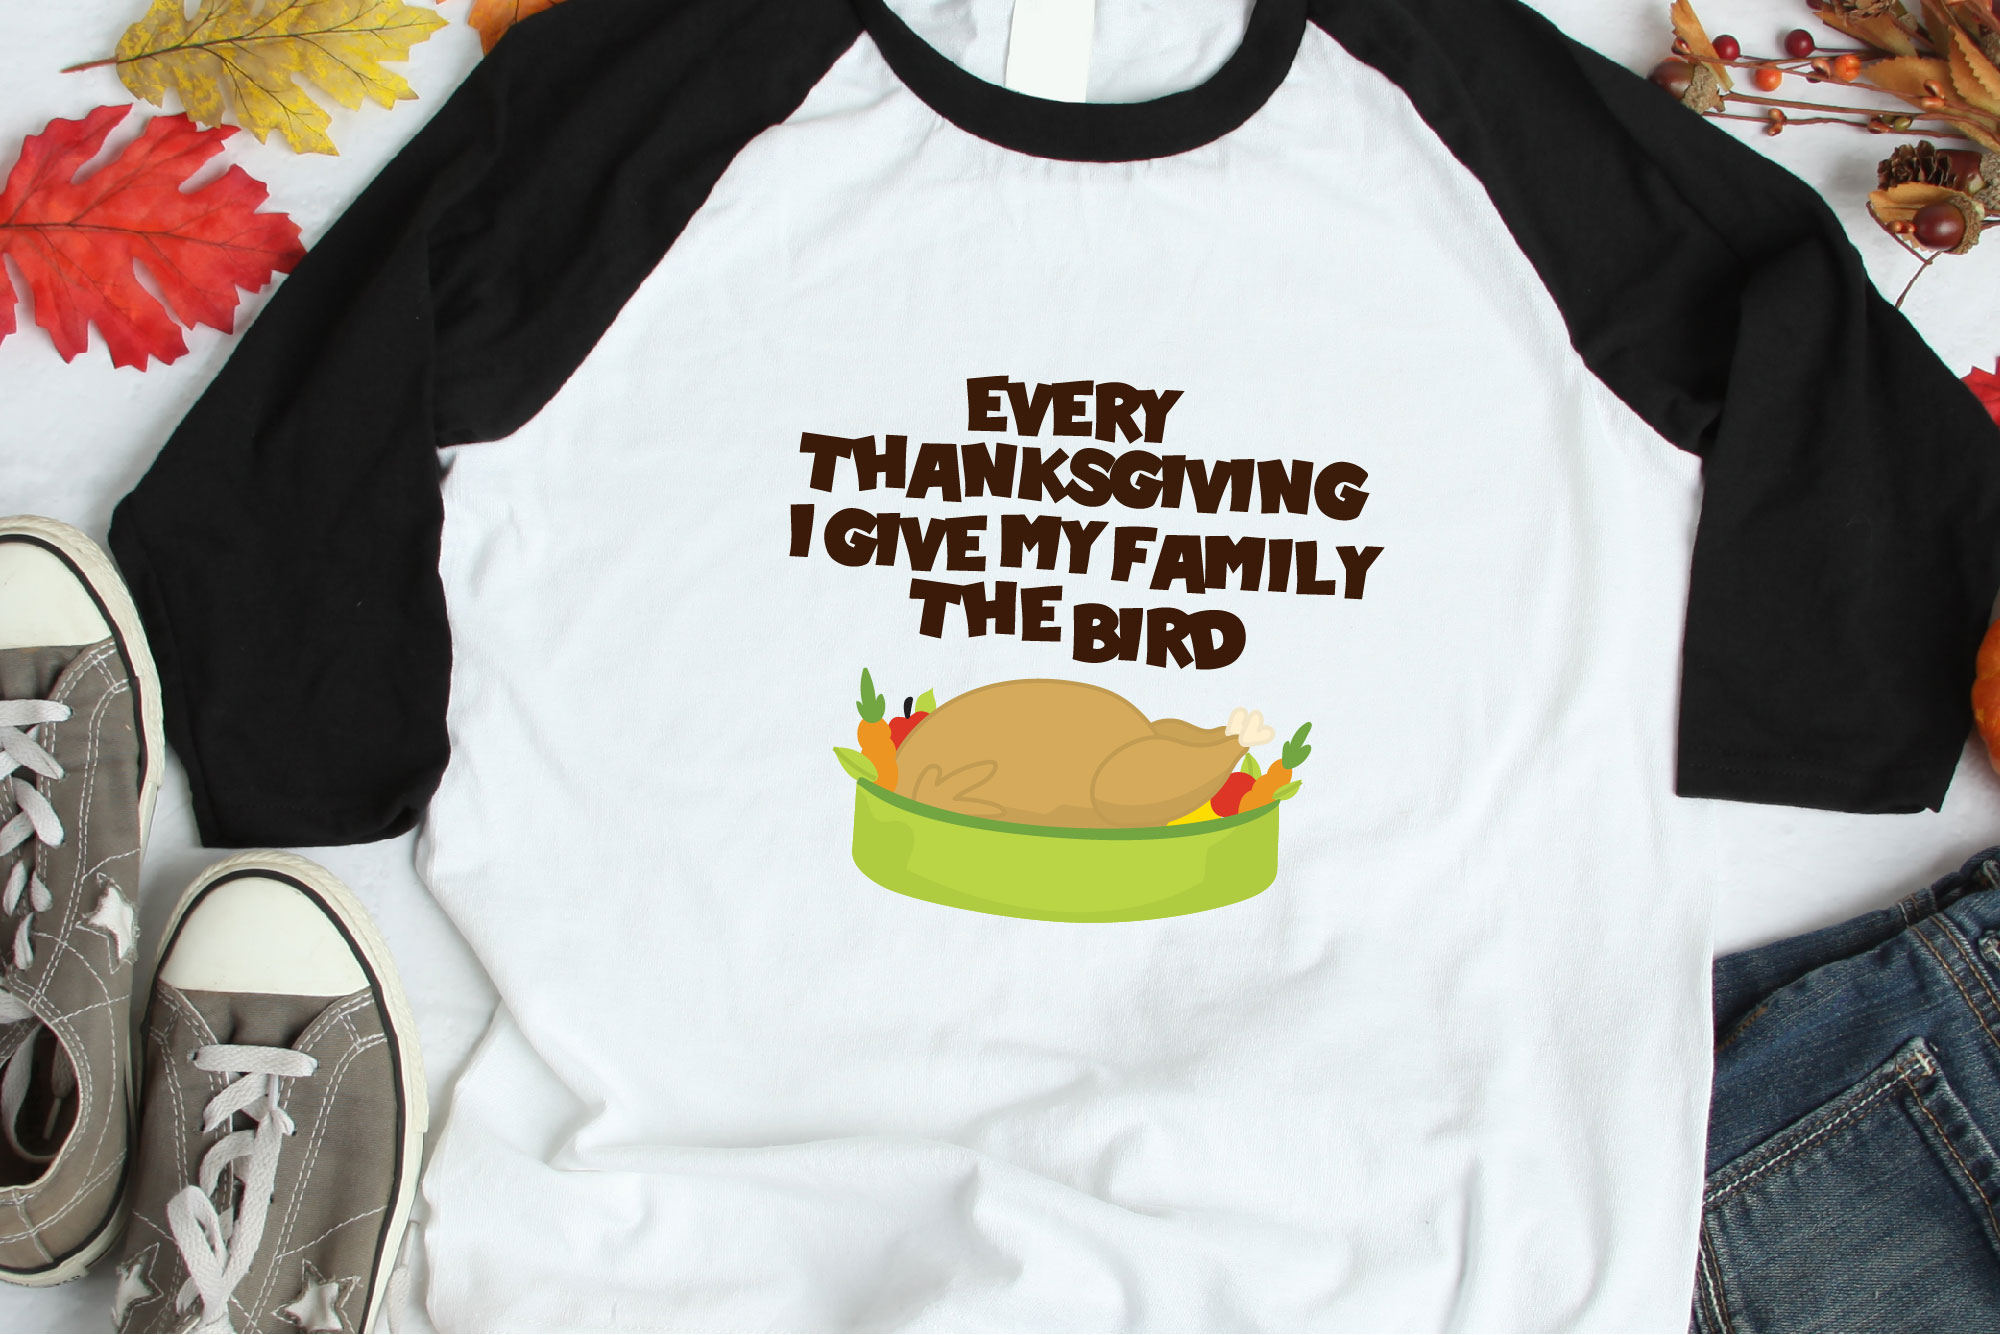 Thanksgiving SVG, Every Year I Give My Family The Bird SVG example image 1